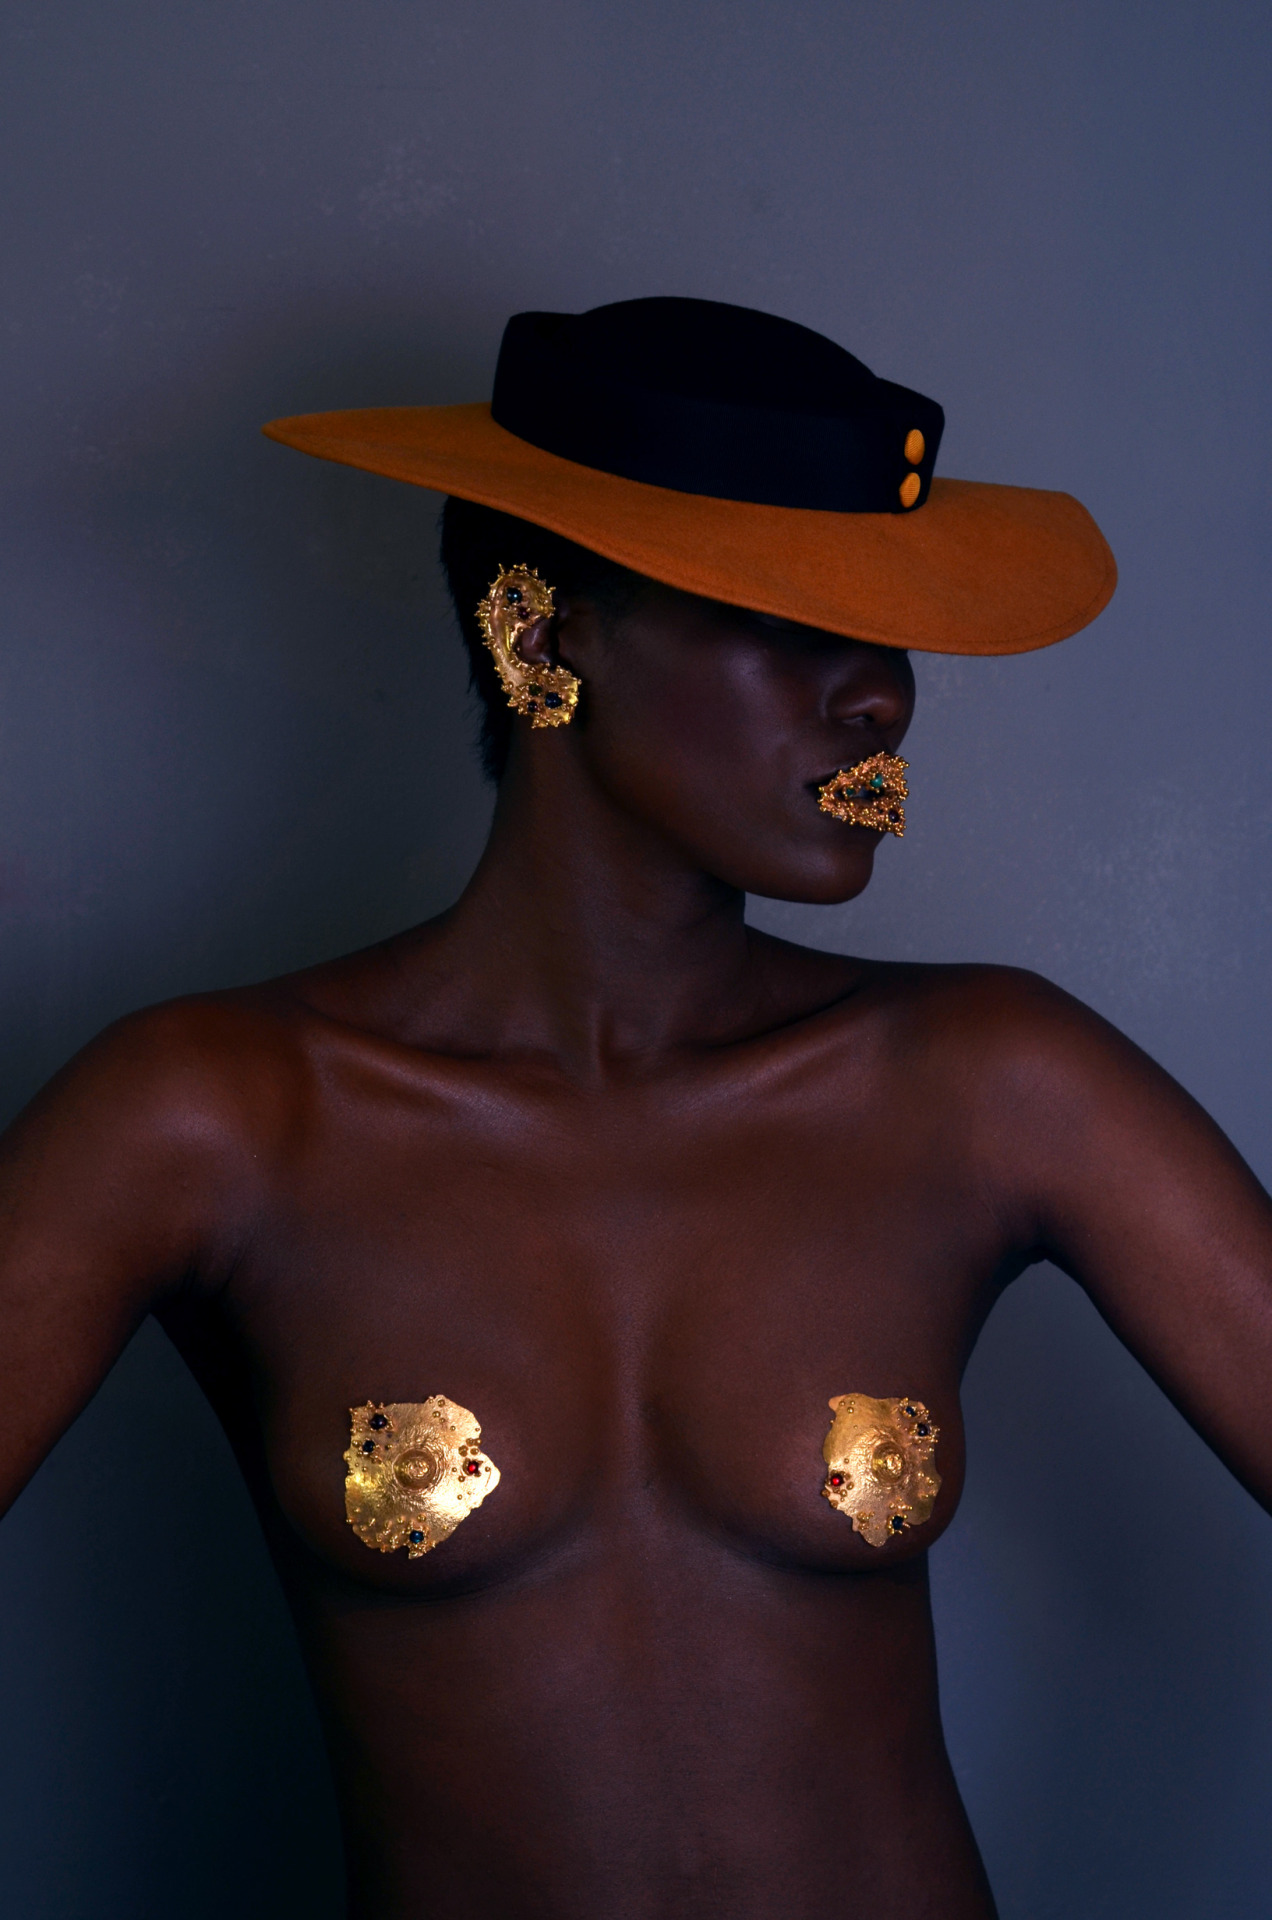 blackfashion:  Model: Denise Manning, Make Up : Alexa DelaRosa, Jewellery: Rebecca Onyett Photographer Marcus Hessenberg marcushessenberg.com